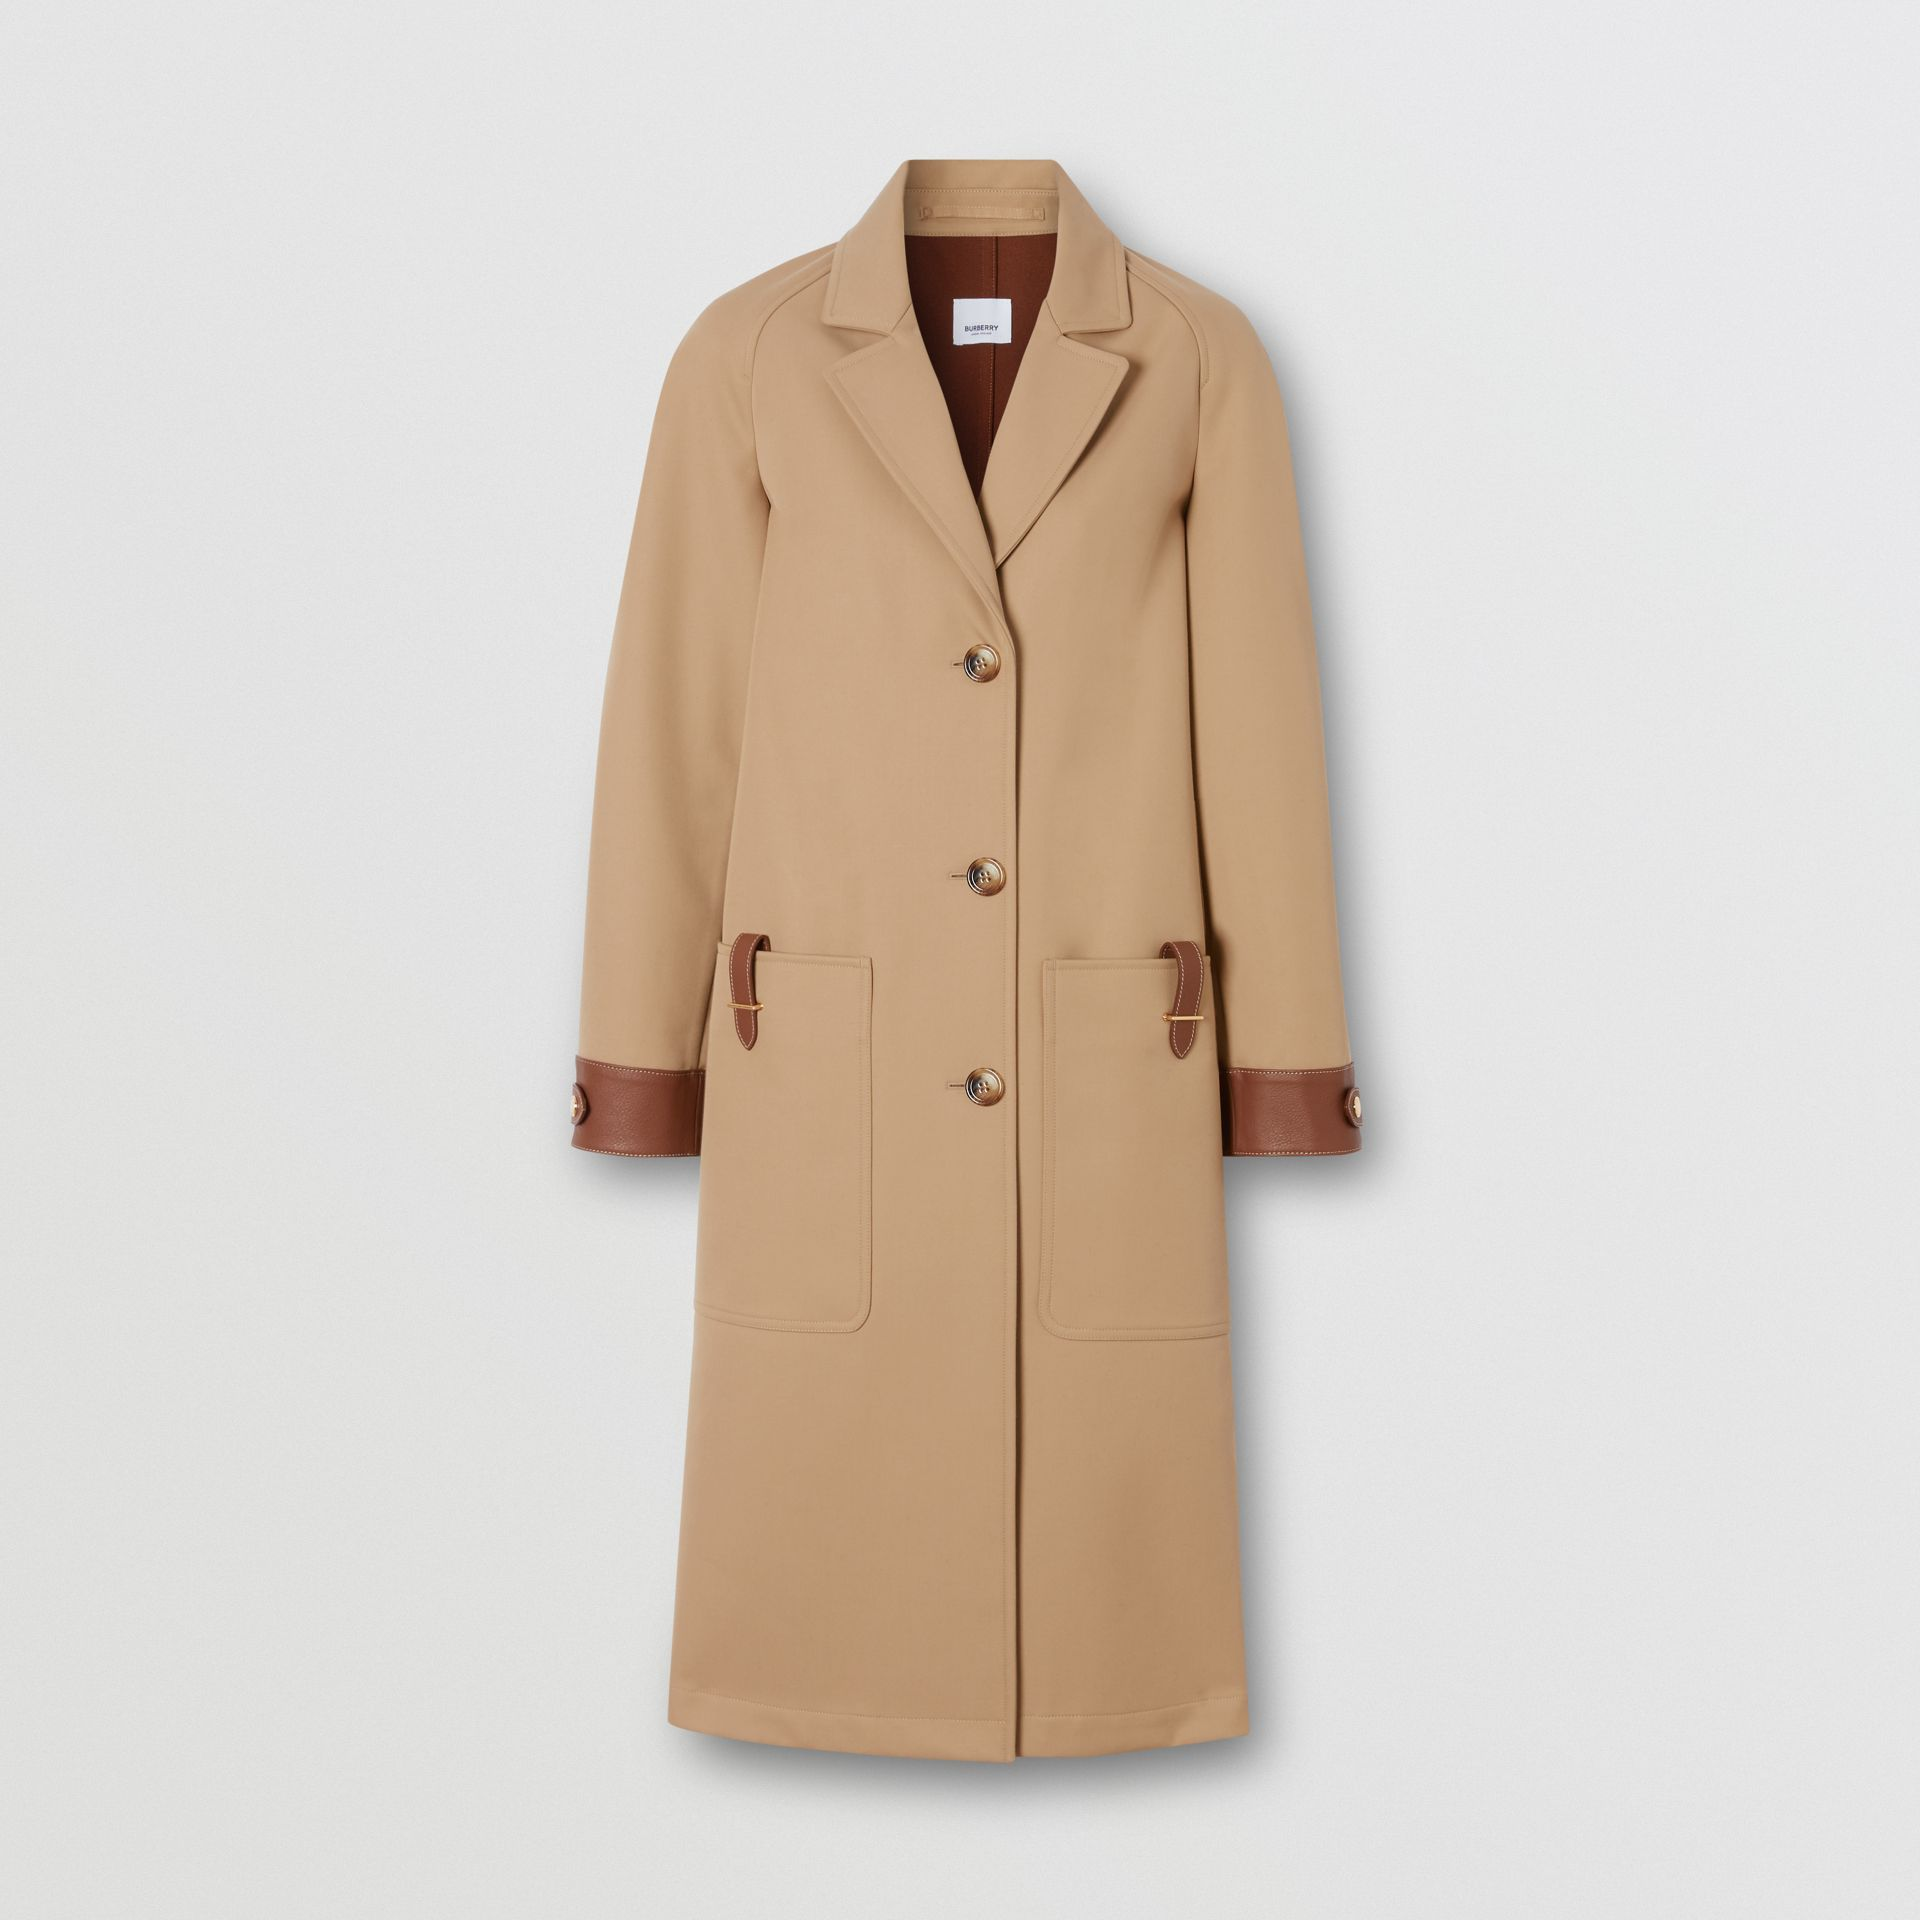 Leather Trim Bonded Cotton Lab Coat in Biscuit - Women | Burberry United States - gallery image 3